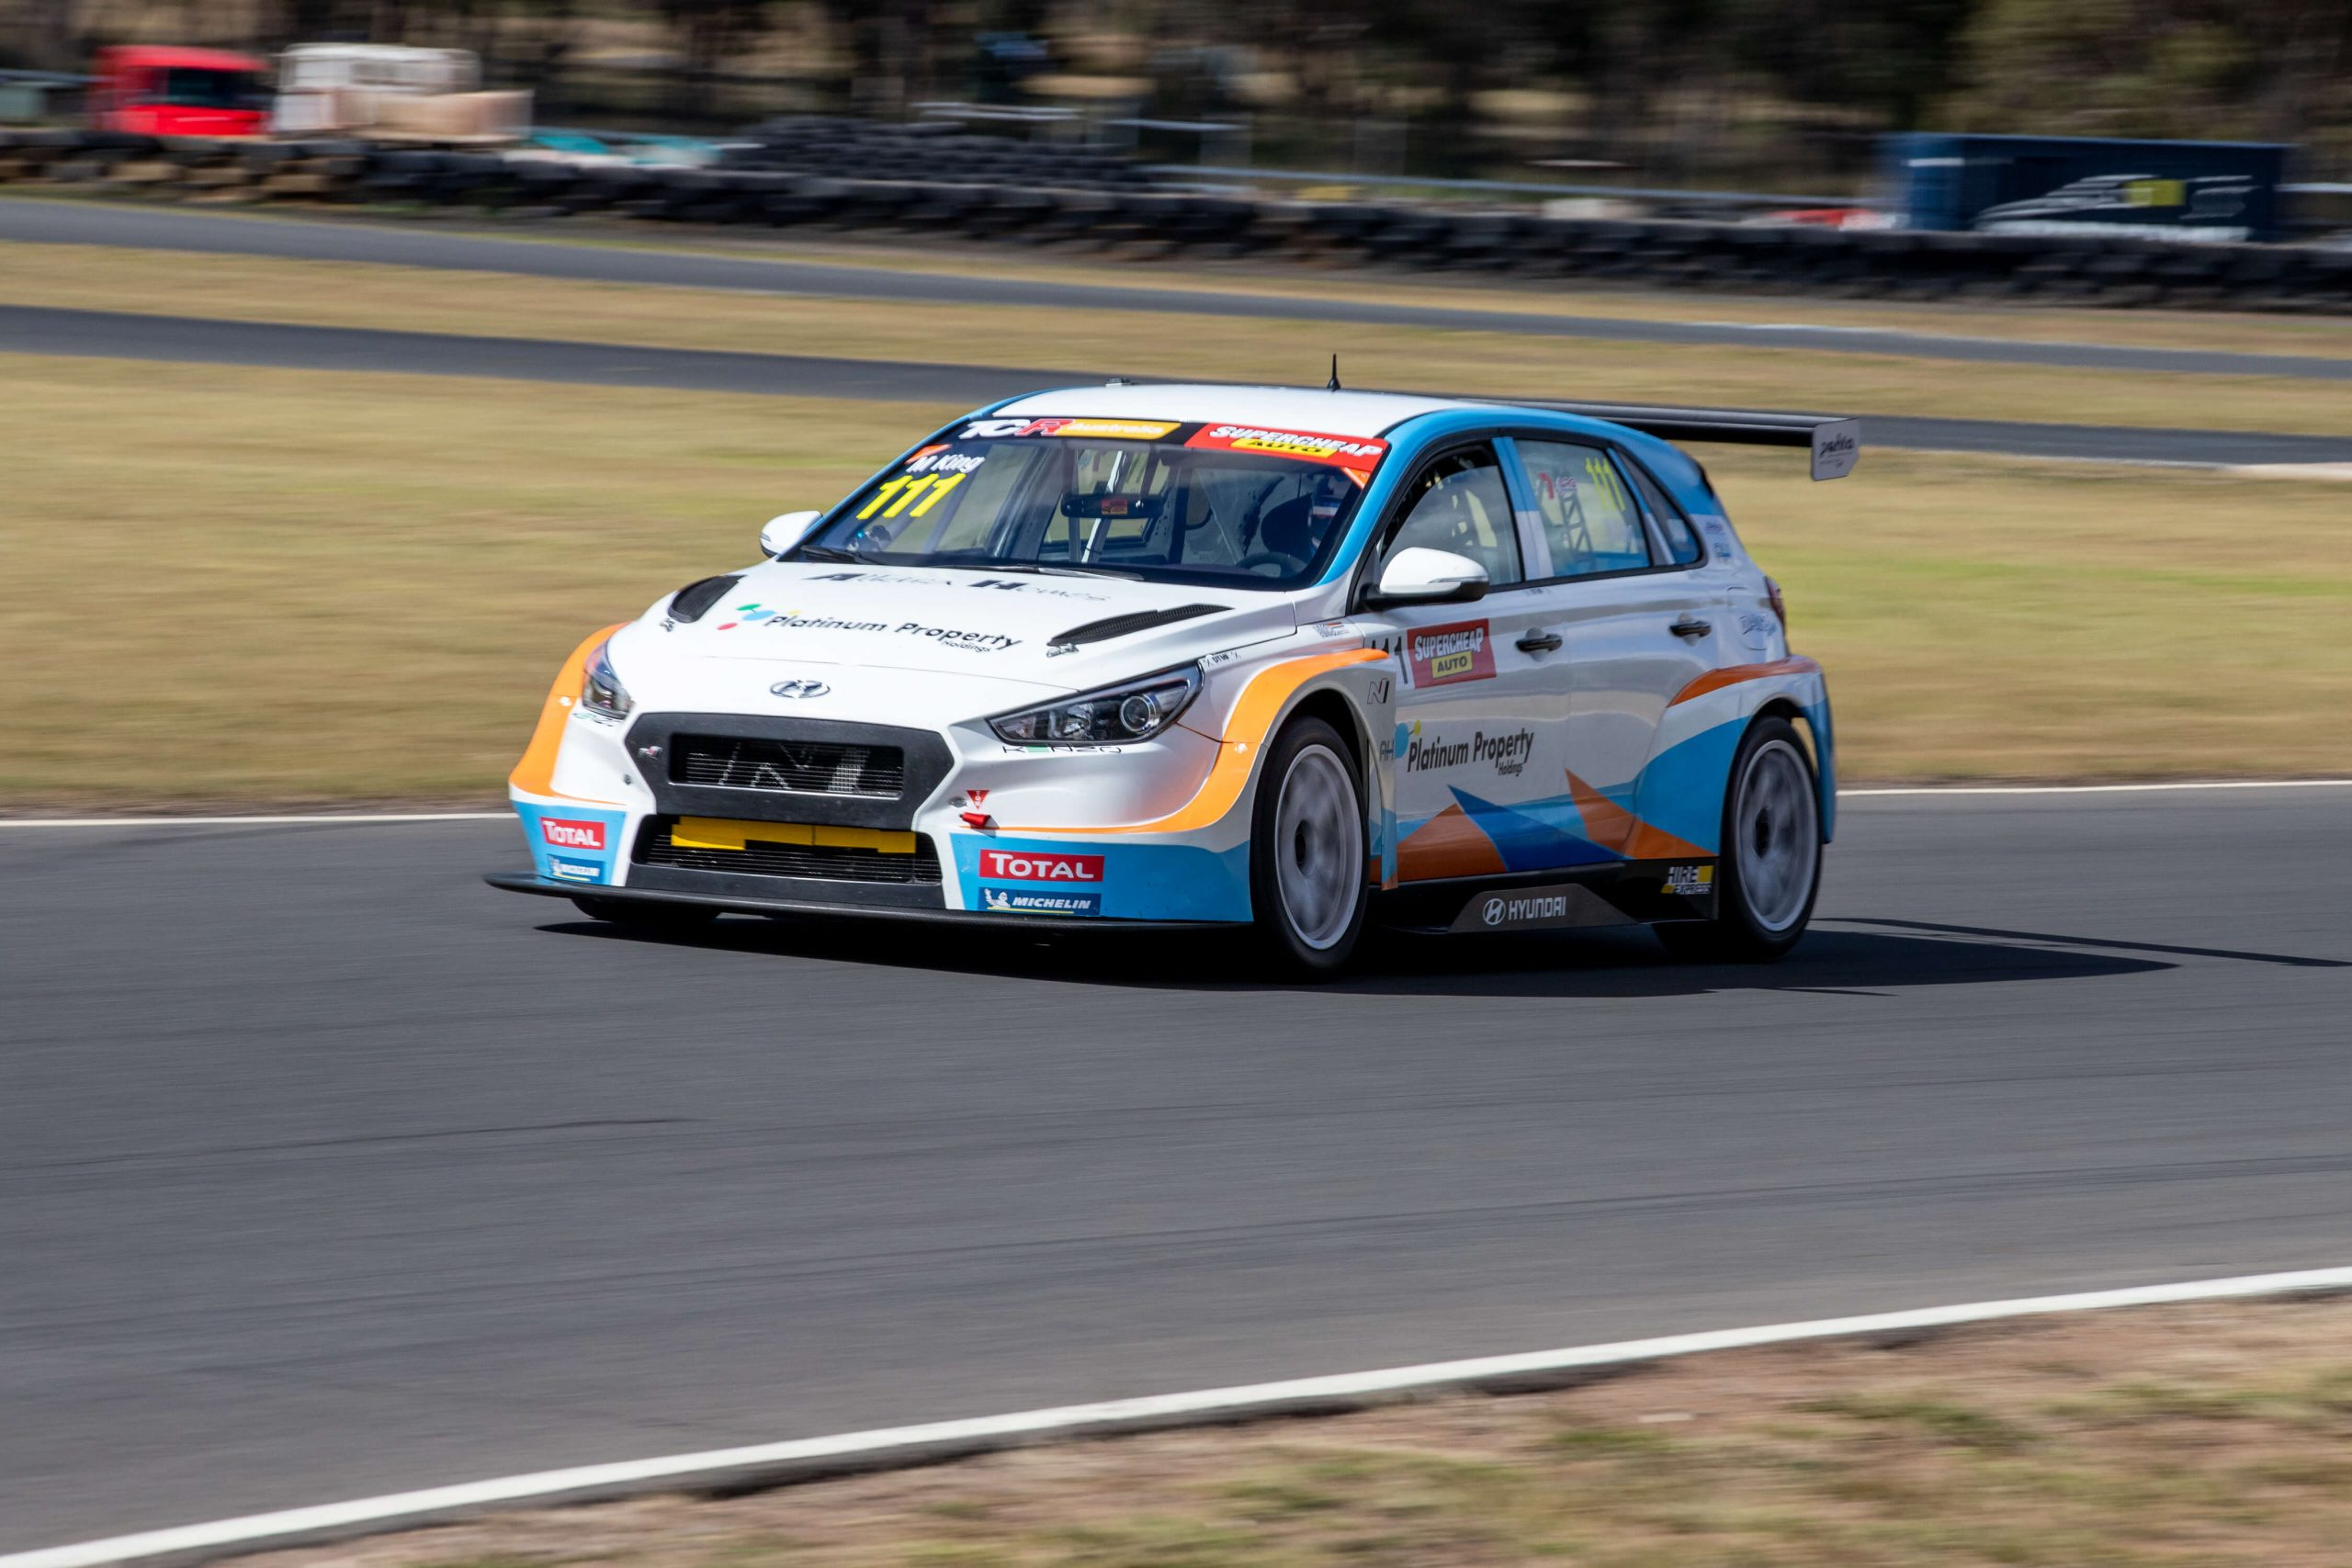 Hyundai privateer gets early look at Morgan Park in i30 N TCR